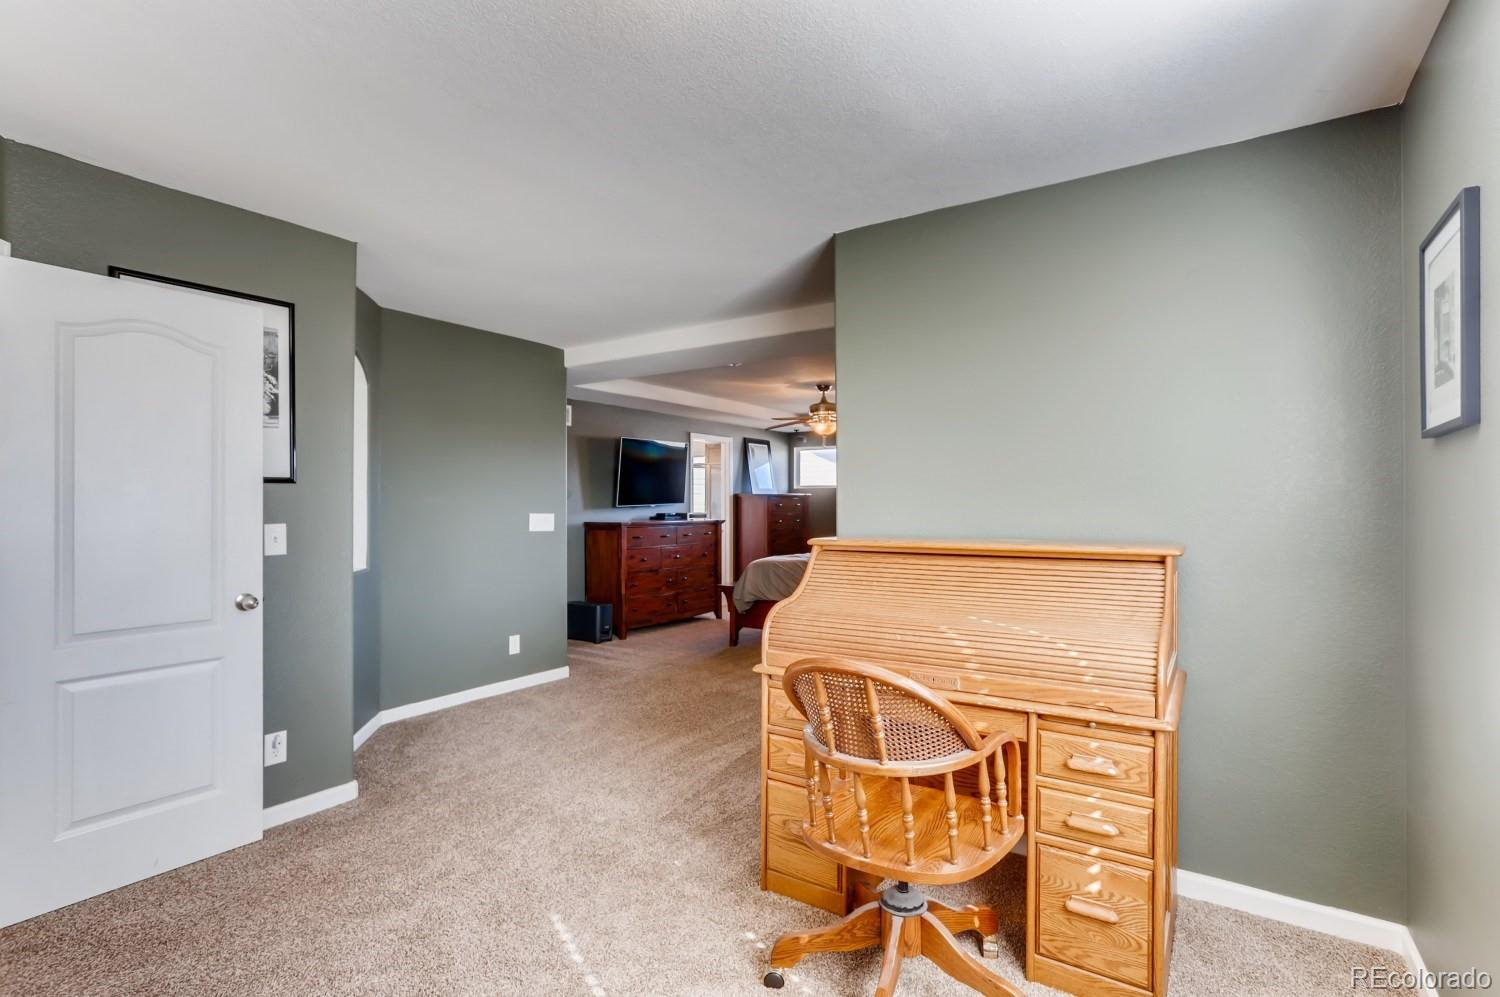 MLS# 7354763 - 21 - 6399 Union Avenue, Firestone, CO 80504